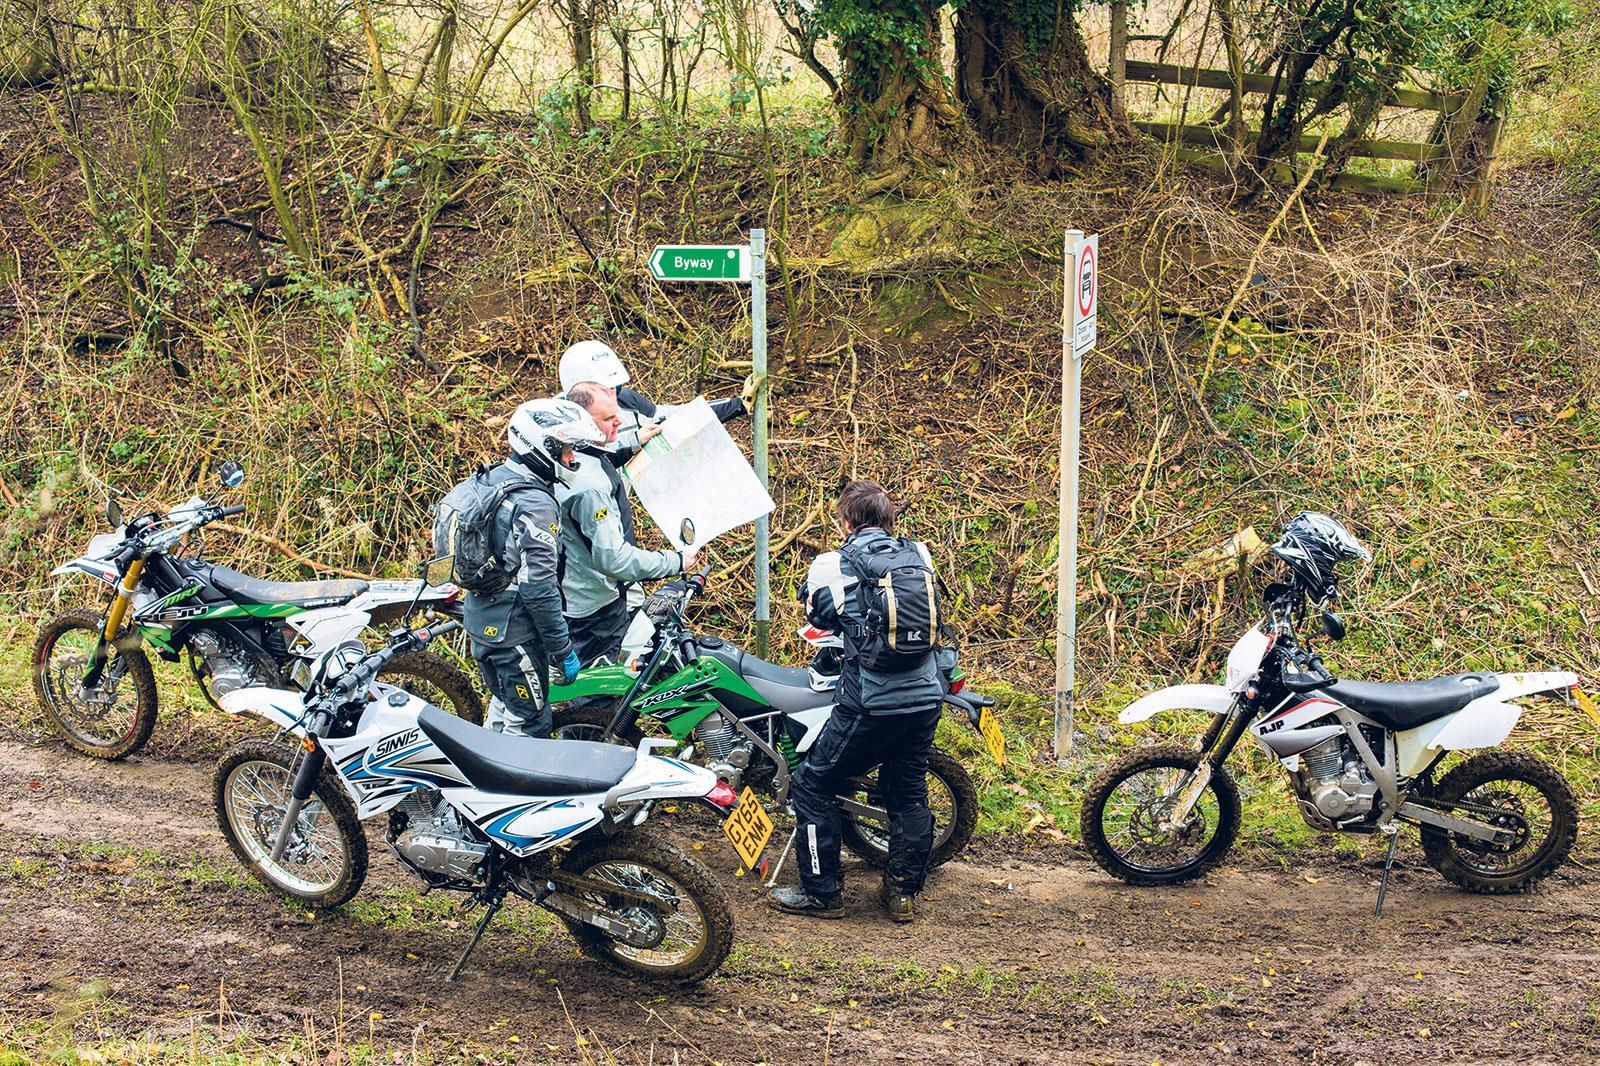 The TRF has lots of information about where you can ride your motorbike off road